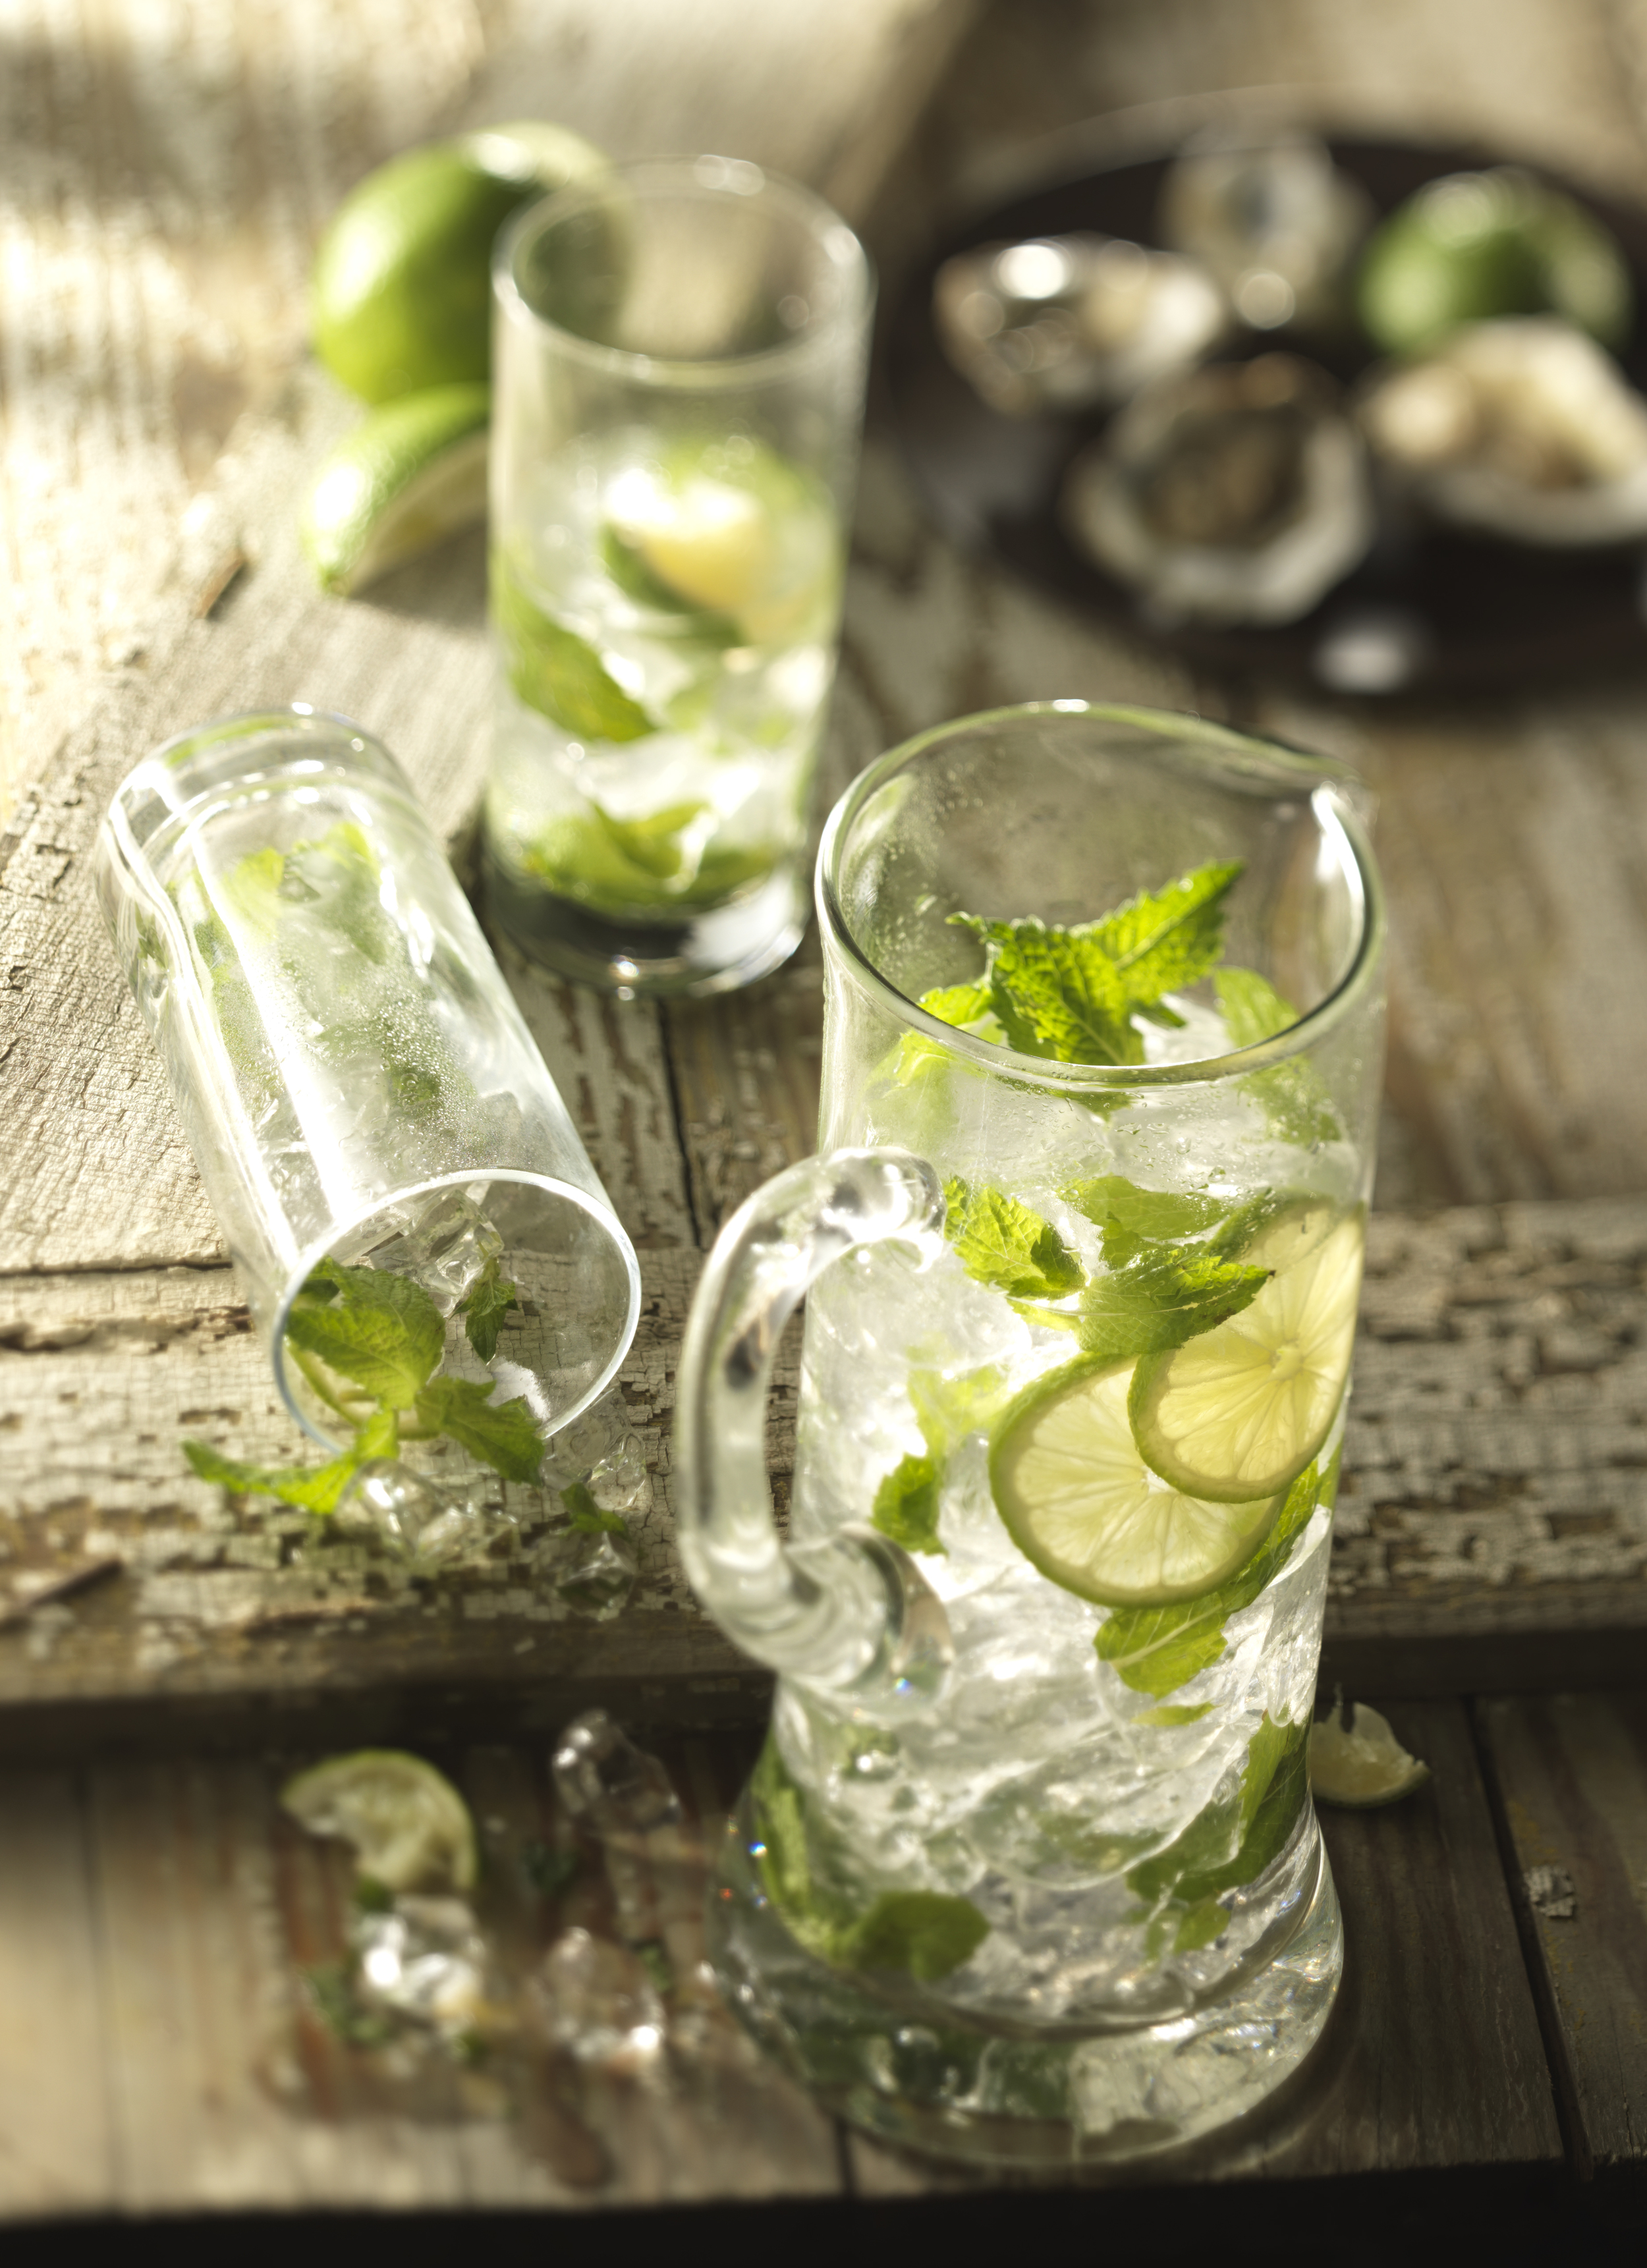 <style> .cincinnati rum and seafood photography { display: none } </style>